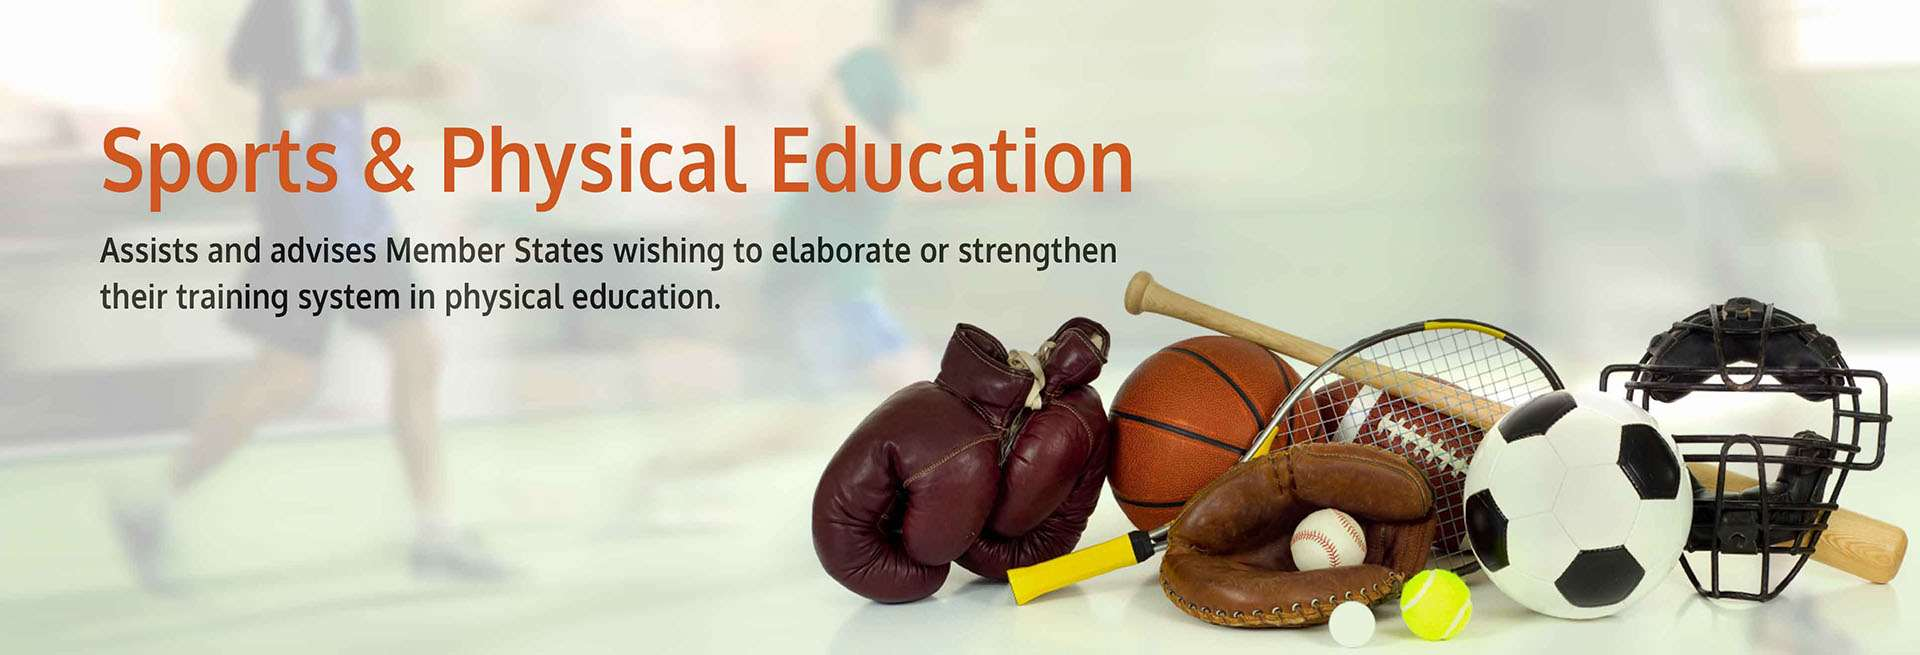 Sports & Physical Education